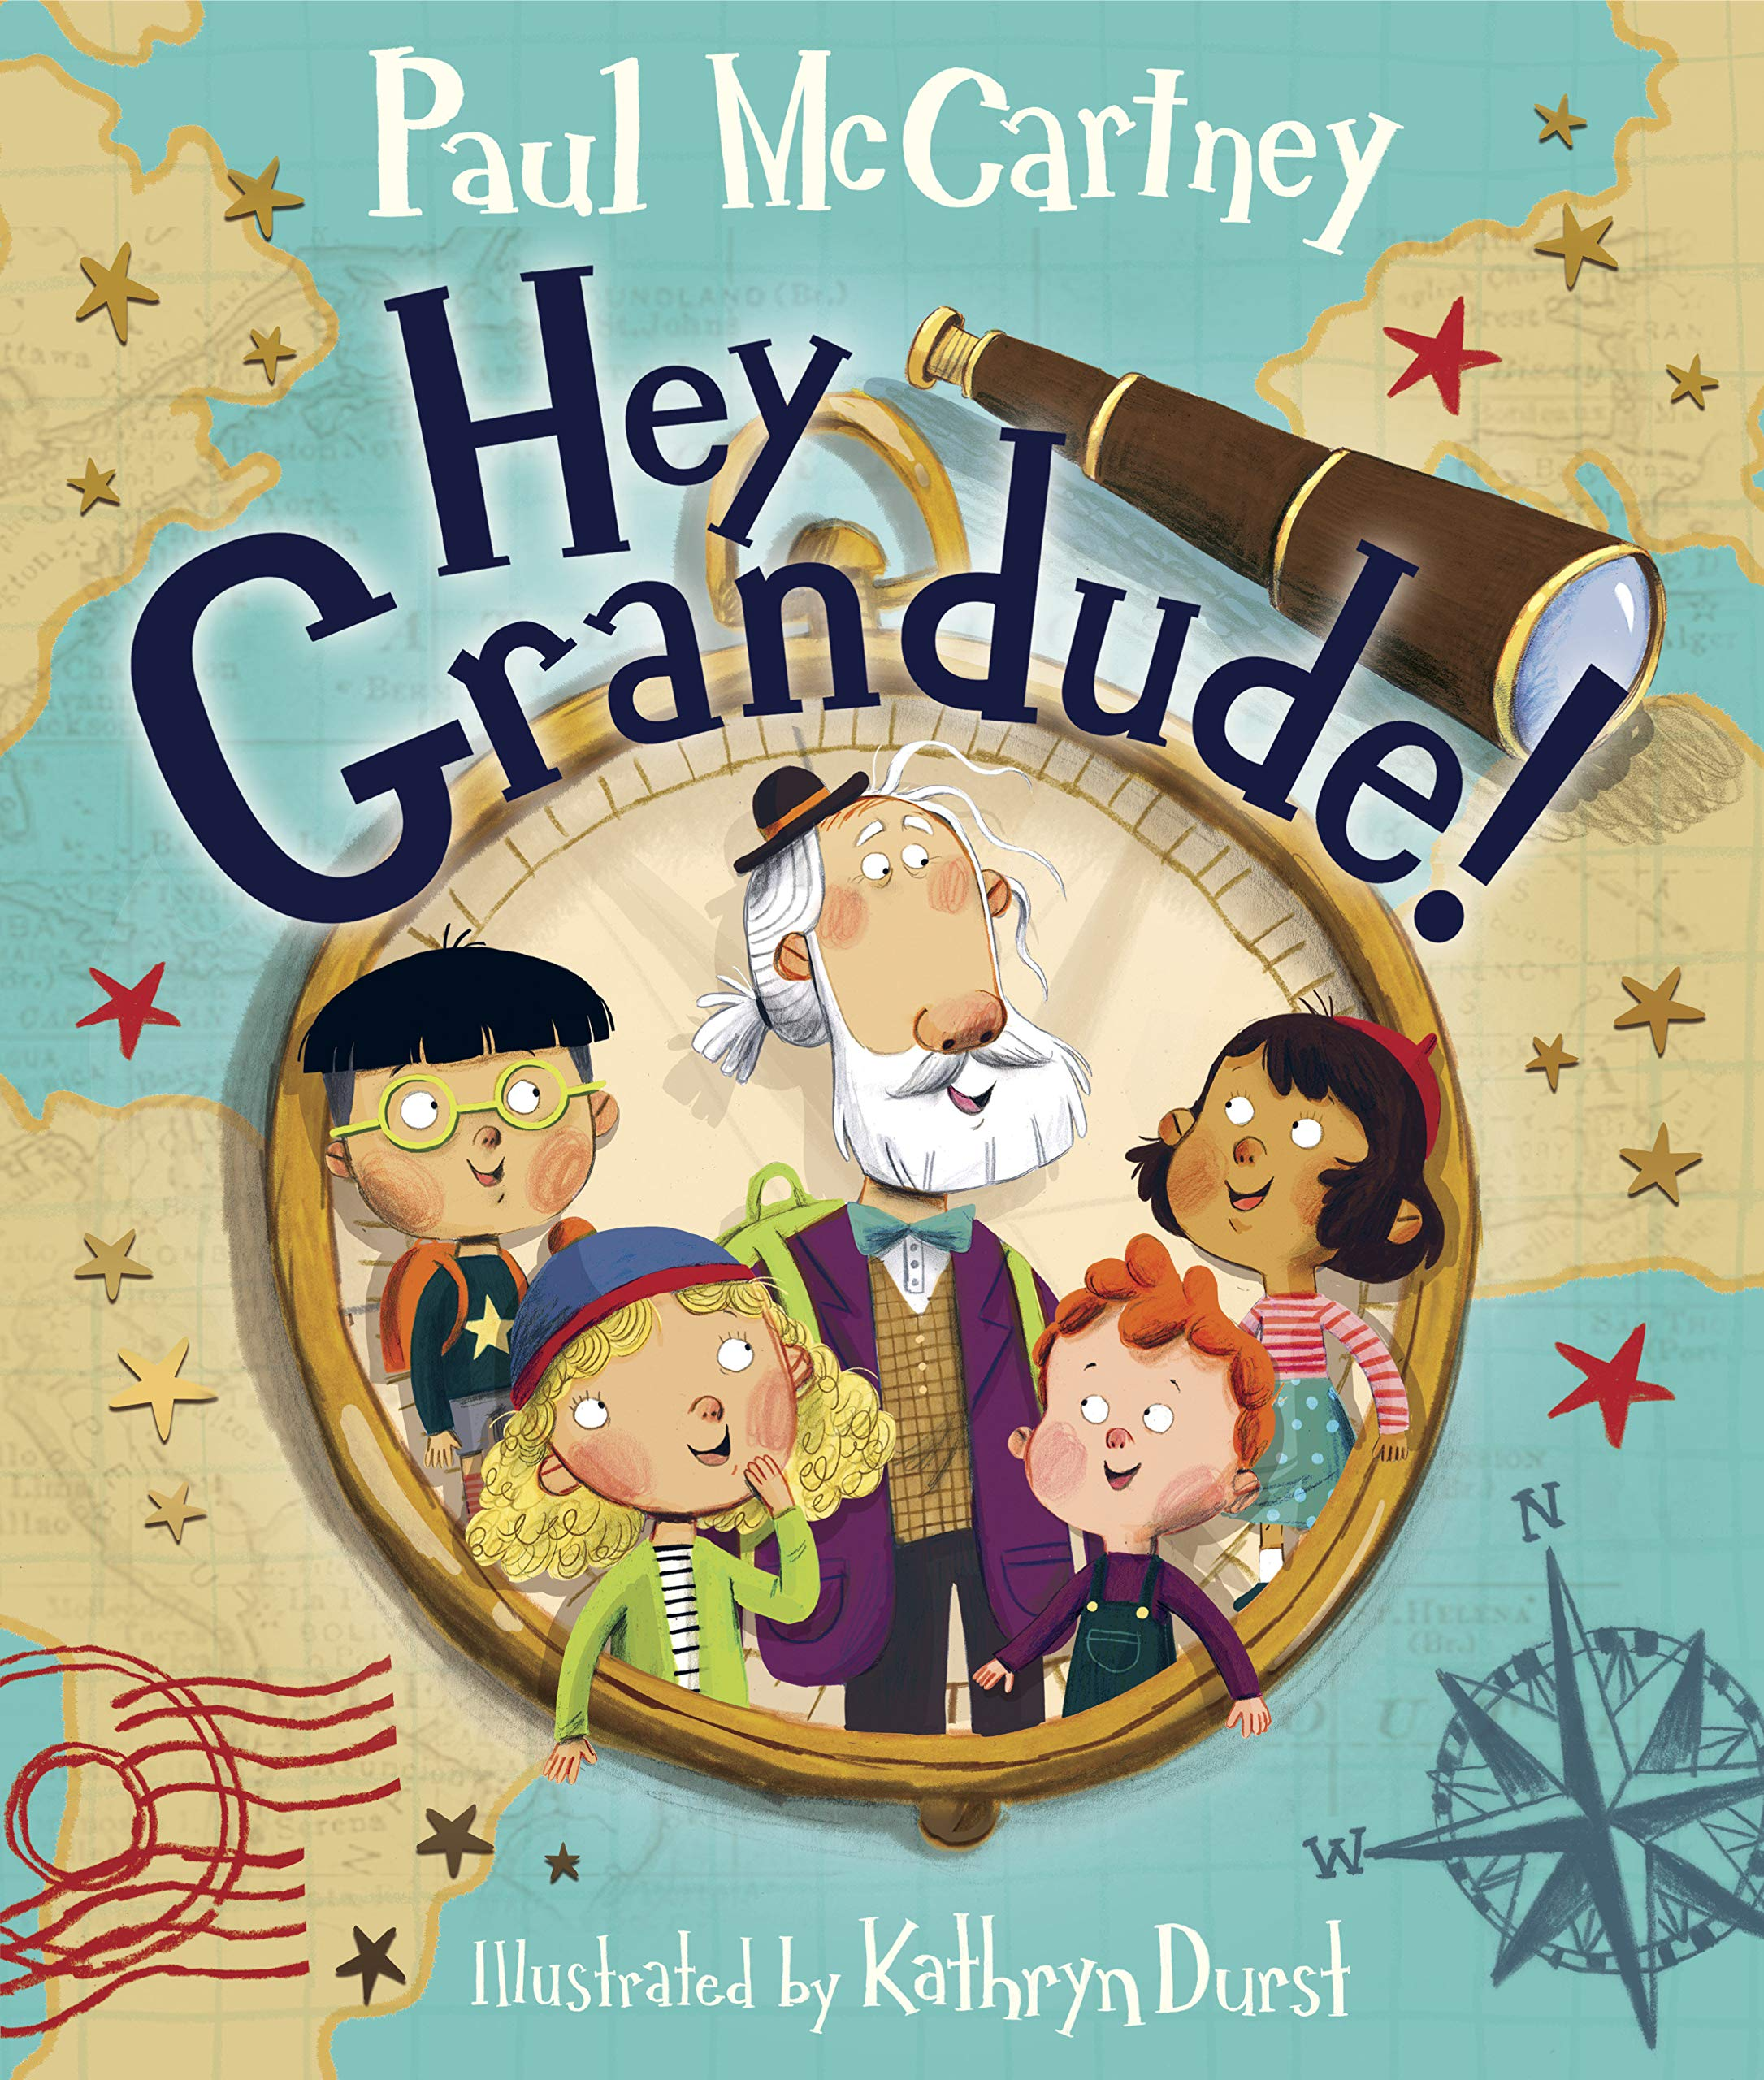 Hey Grandude!: McCartney, Paul, Durst, Kathryn: 9780525648673: Amazon.com:  Books